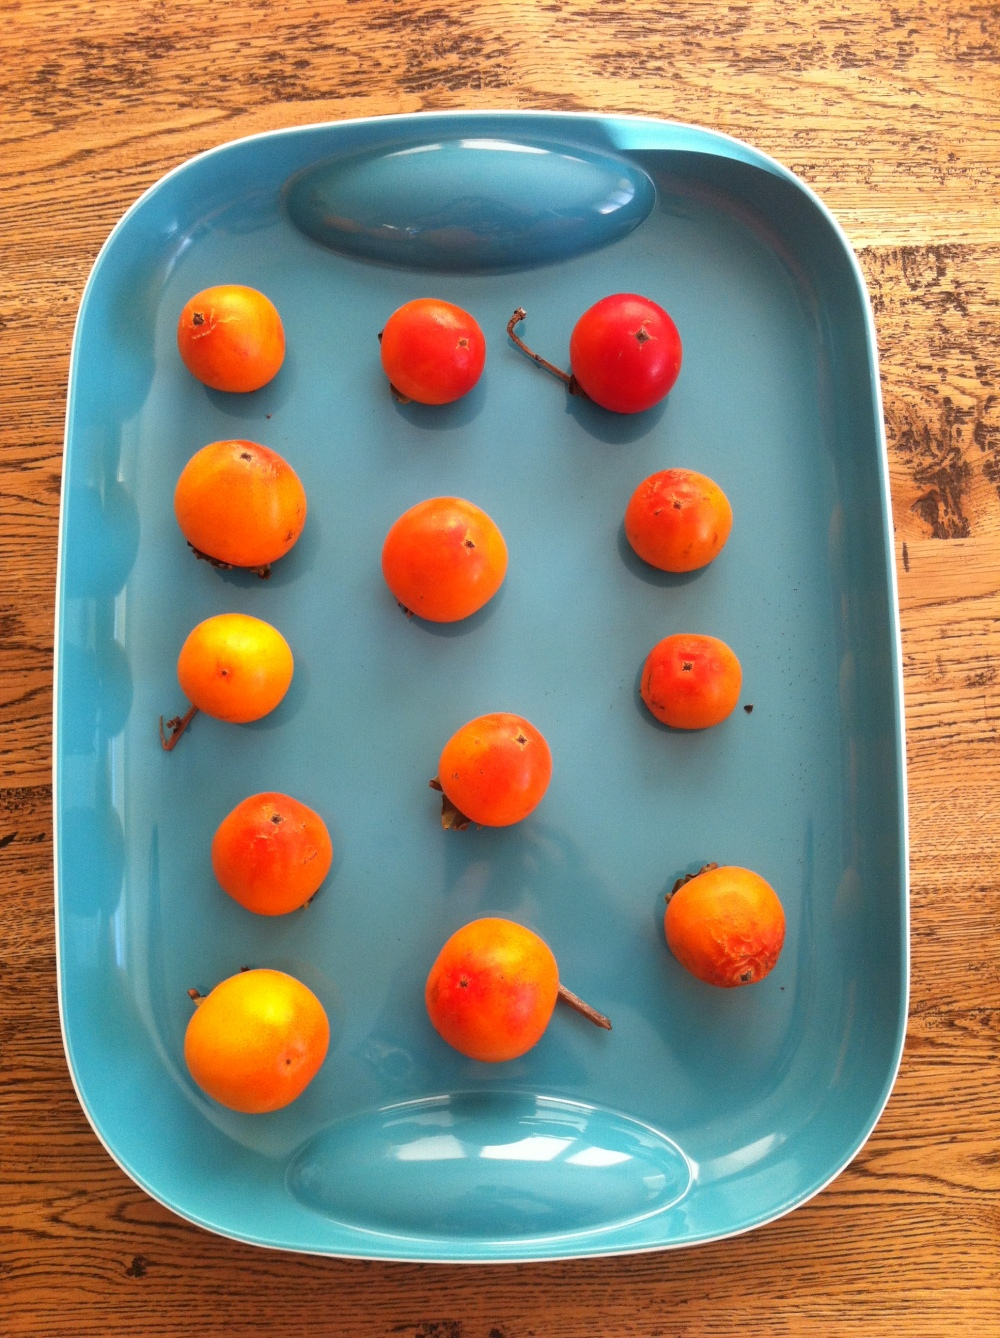 Persimmons ripening on a tray